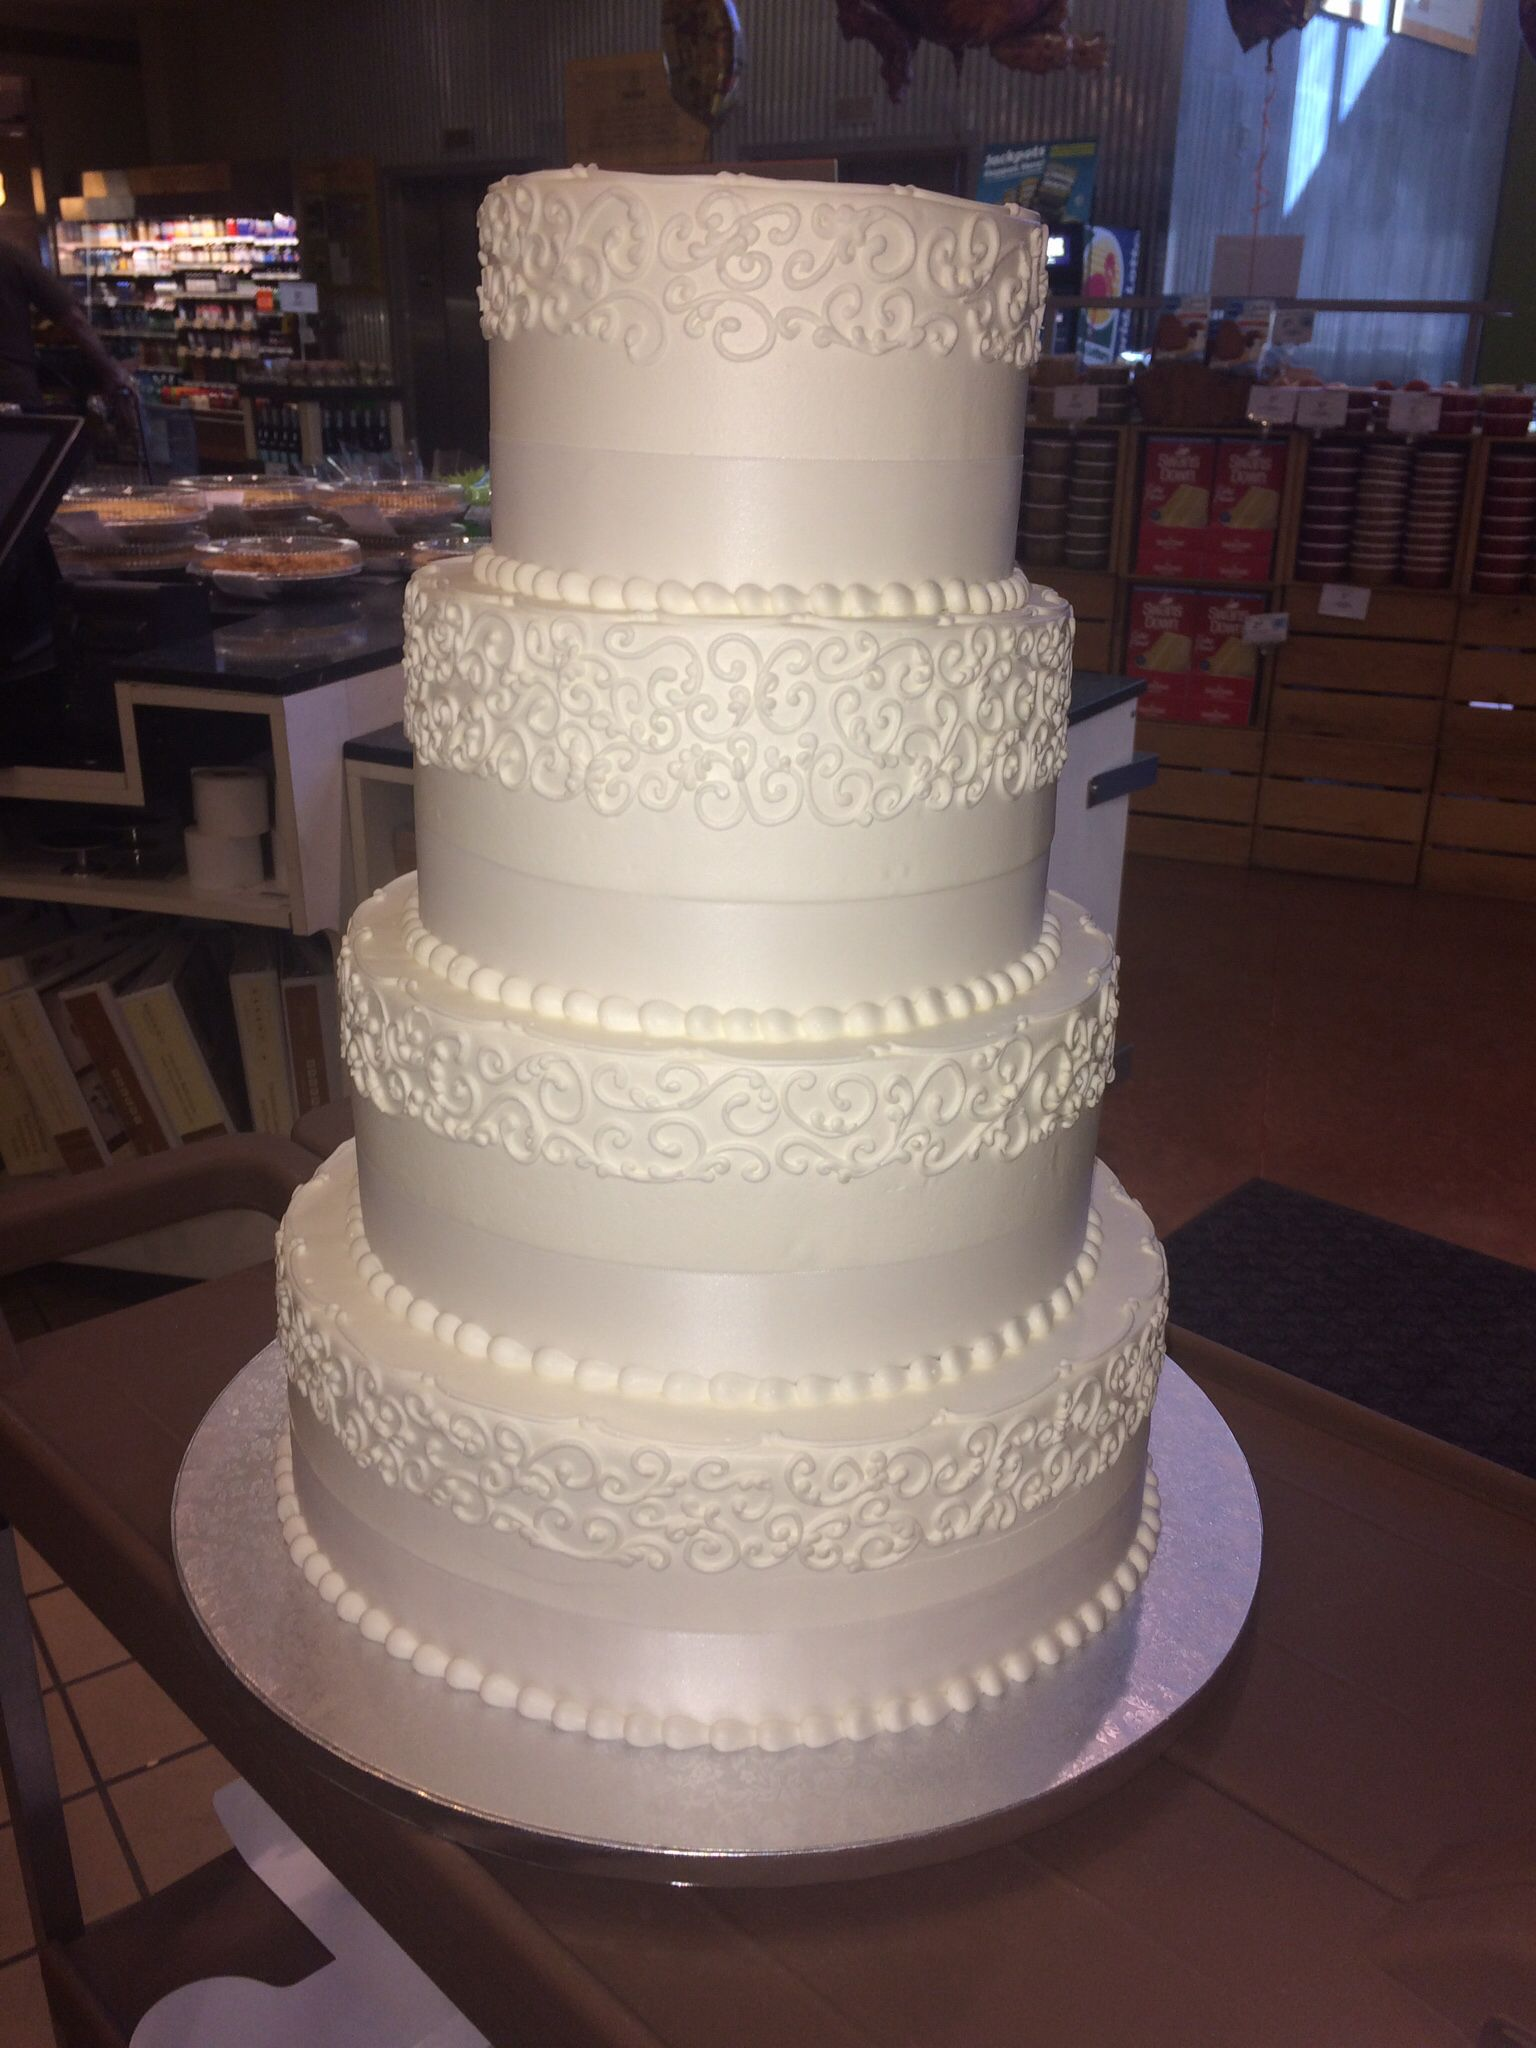 Publix GreenWise wedding cake Hyde Park Tampa FL